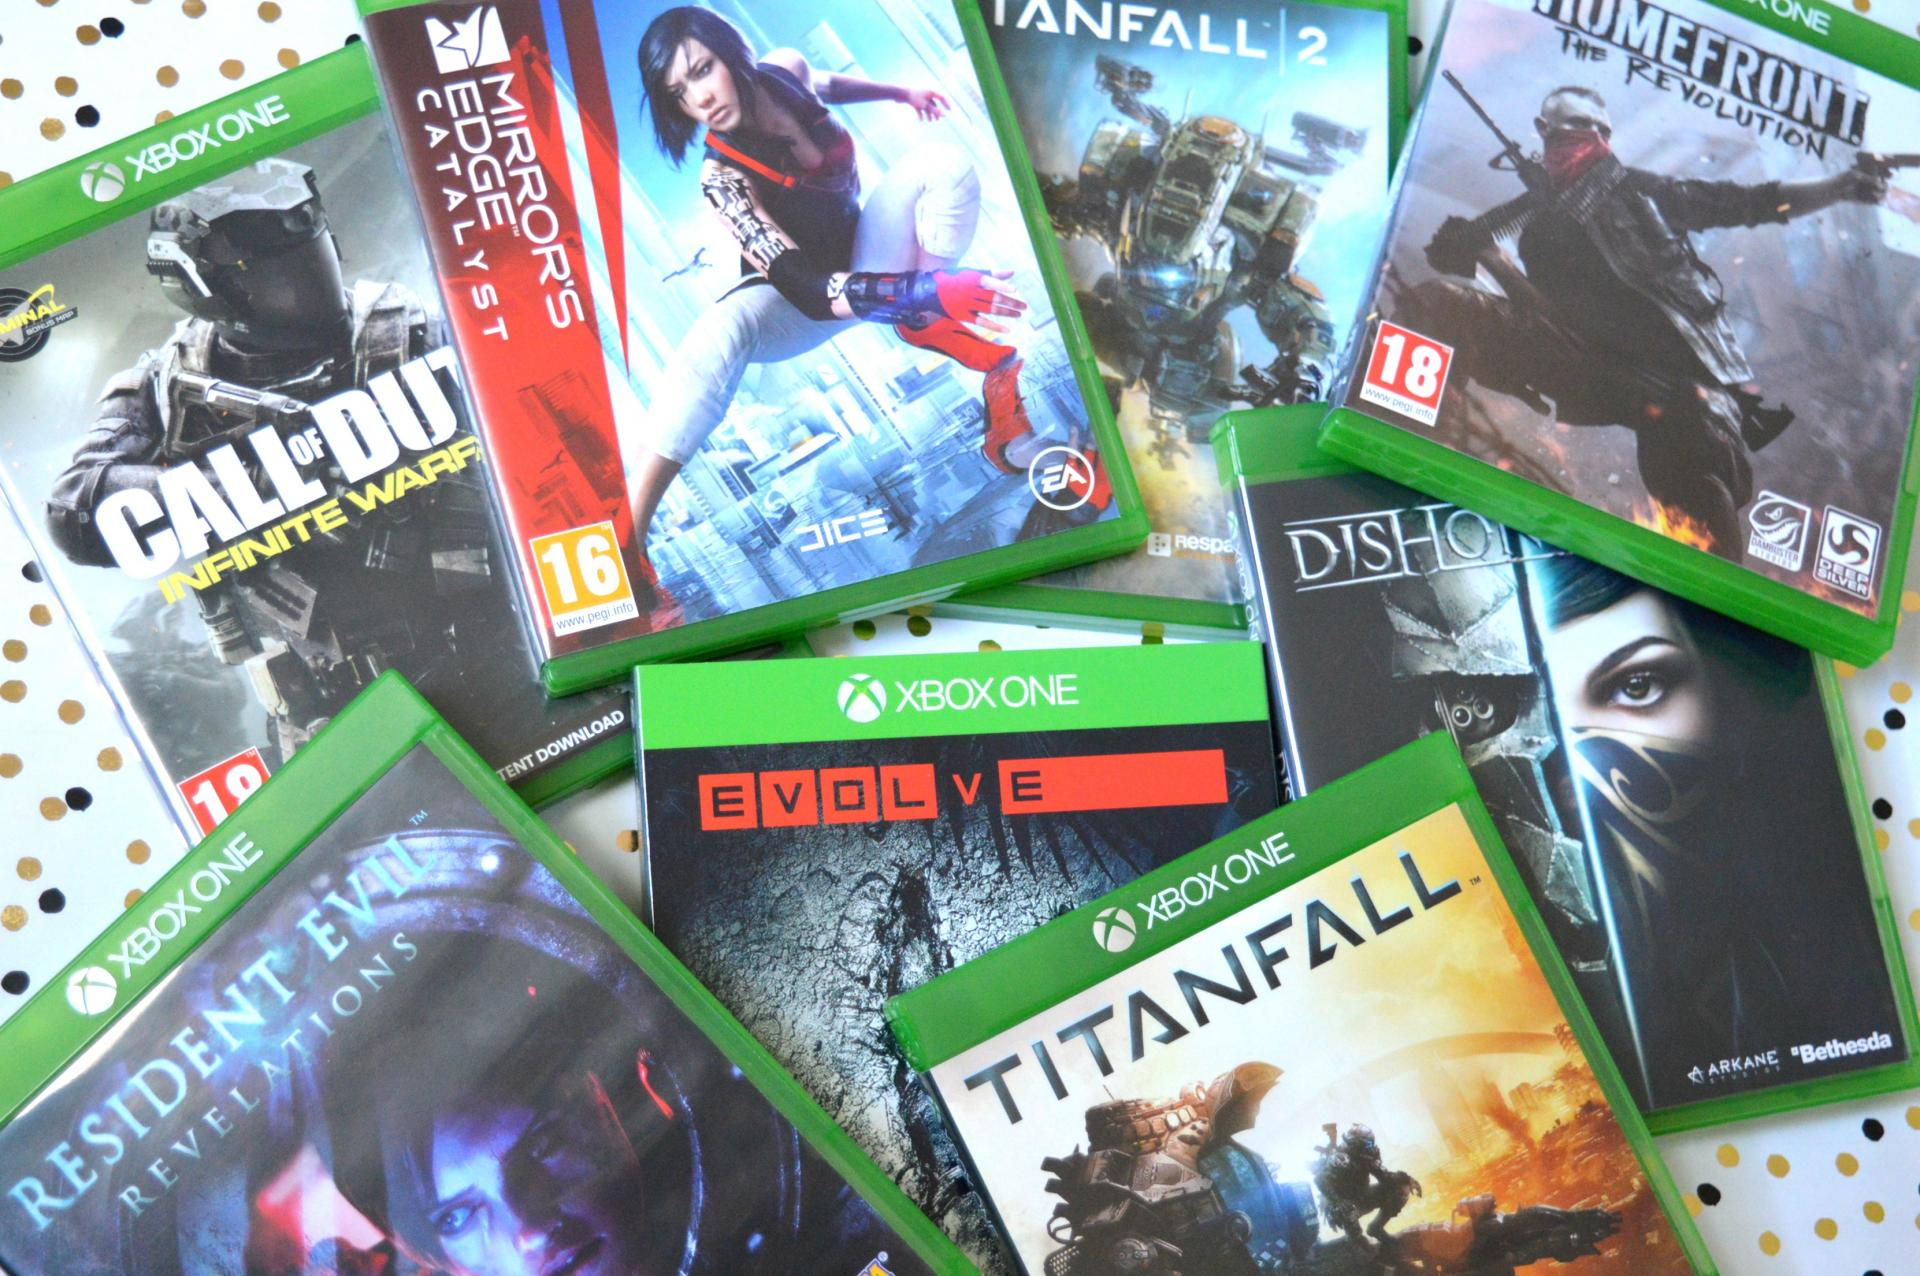 8 Super Affordable Games I Got From The Game Collection - Titanfall, Titanfall 2, Evolve, Homefront The Revolution, Mirror's Edge Catalyst, Call Of Duty Infinite Warfare, Dishonoured 2 and Resident Evil Revelations